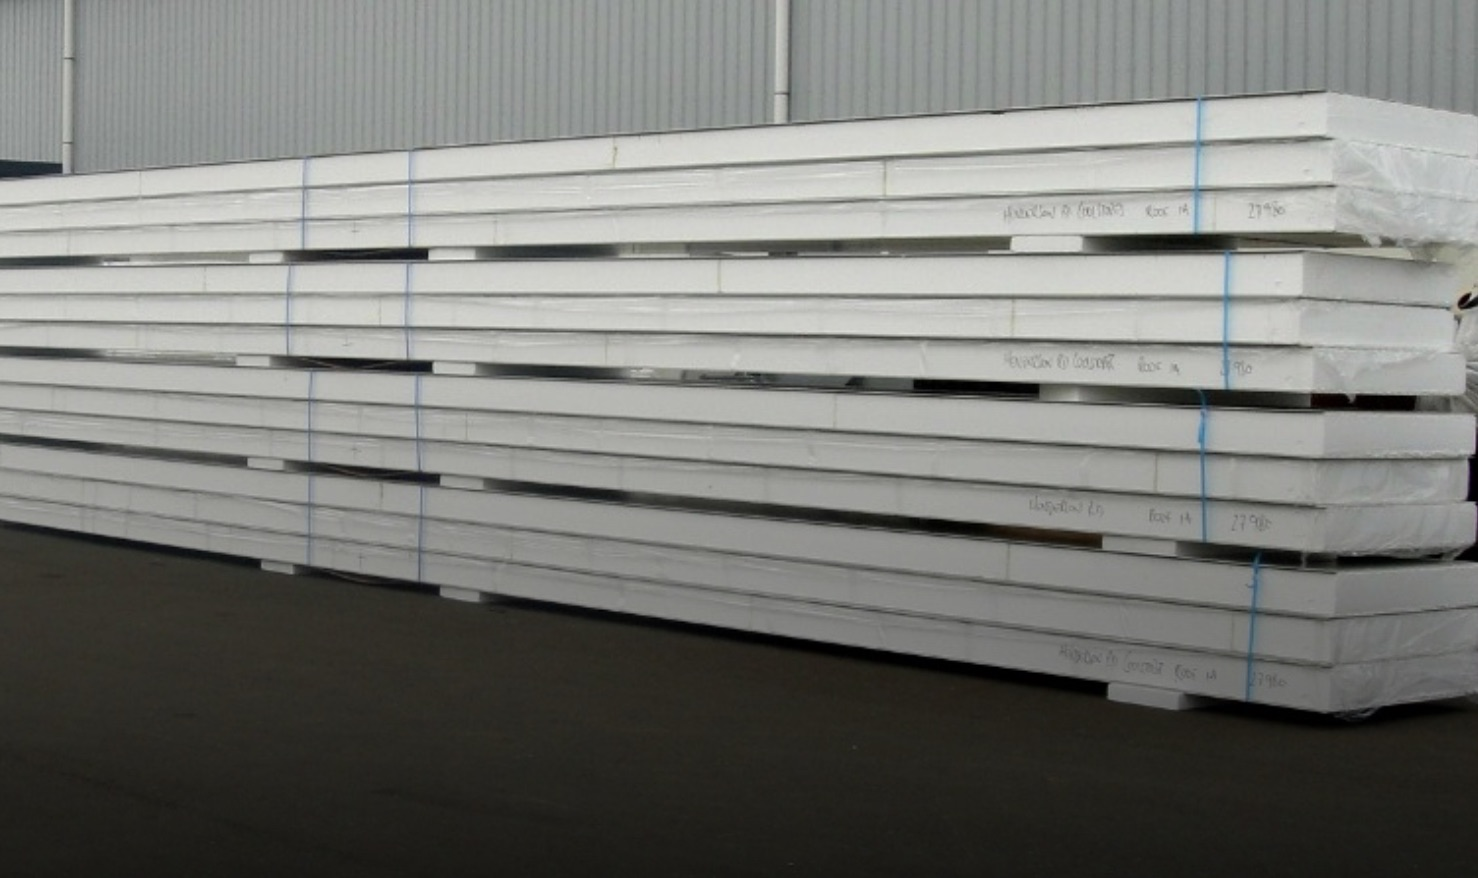 Structural Insulated Panels (SIPs). Photo Credit: LongPanel.com